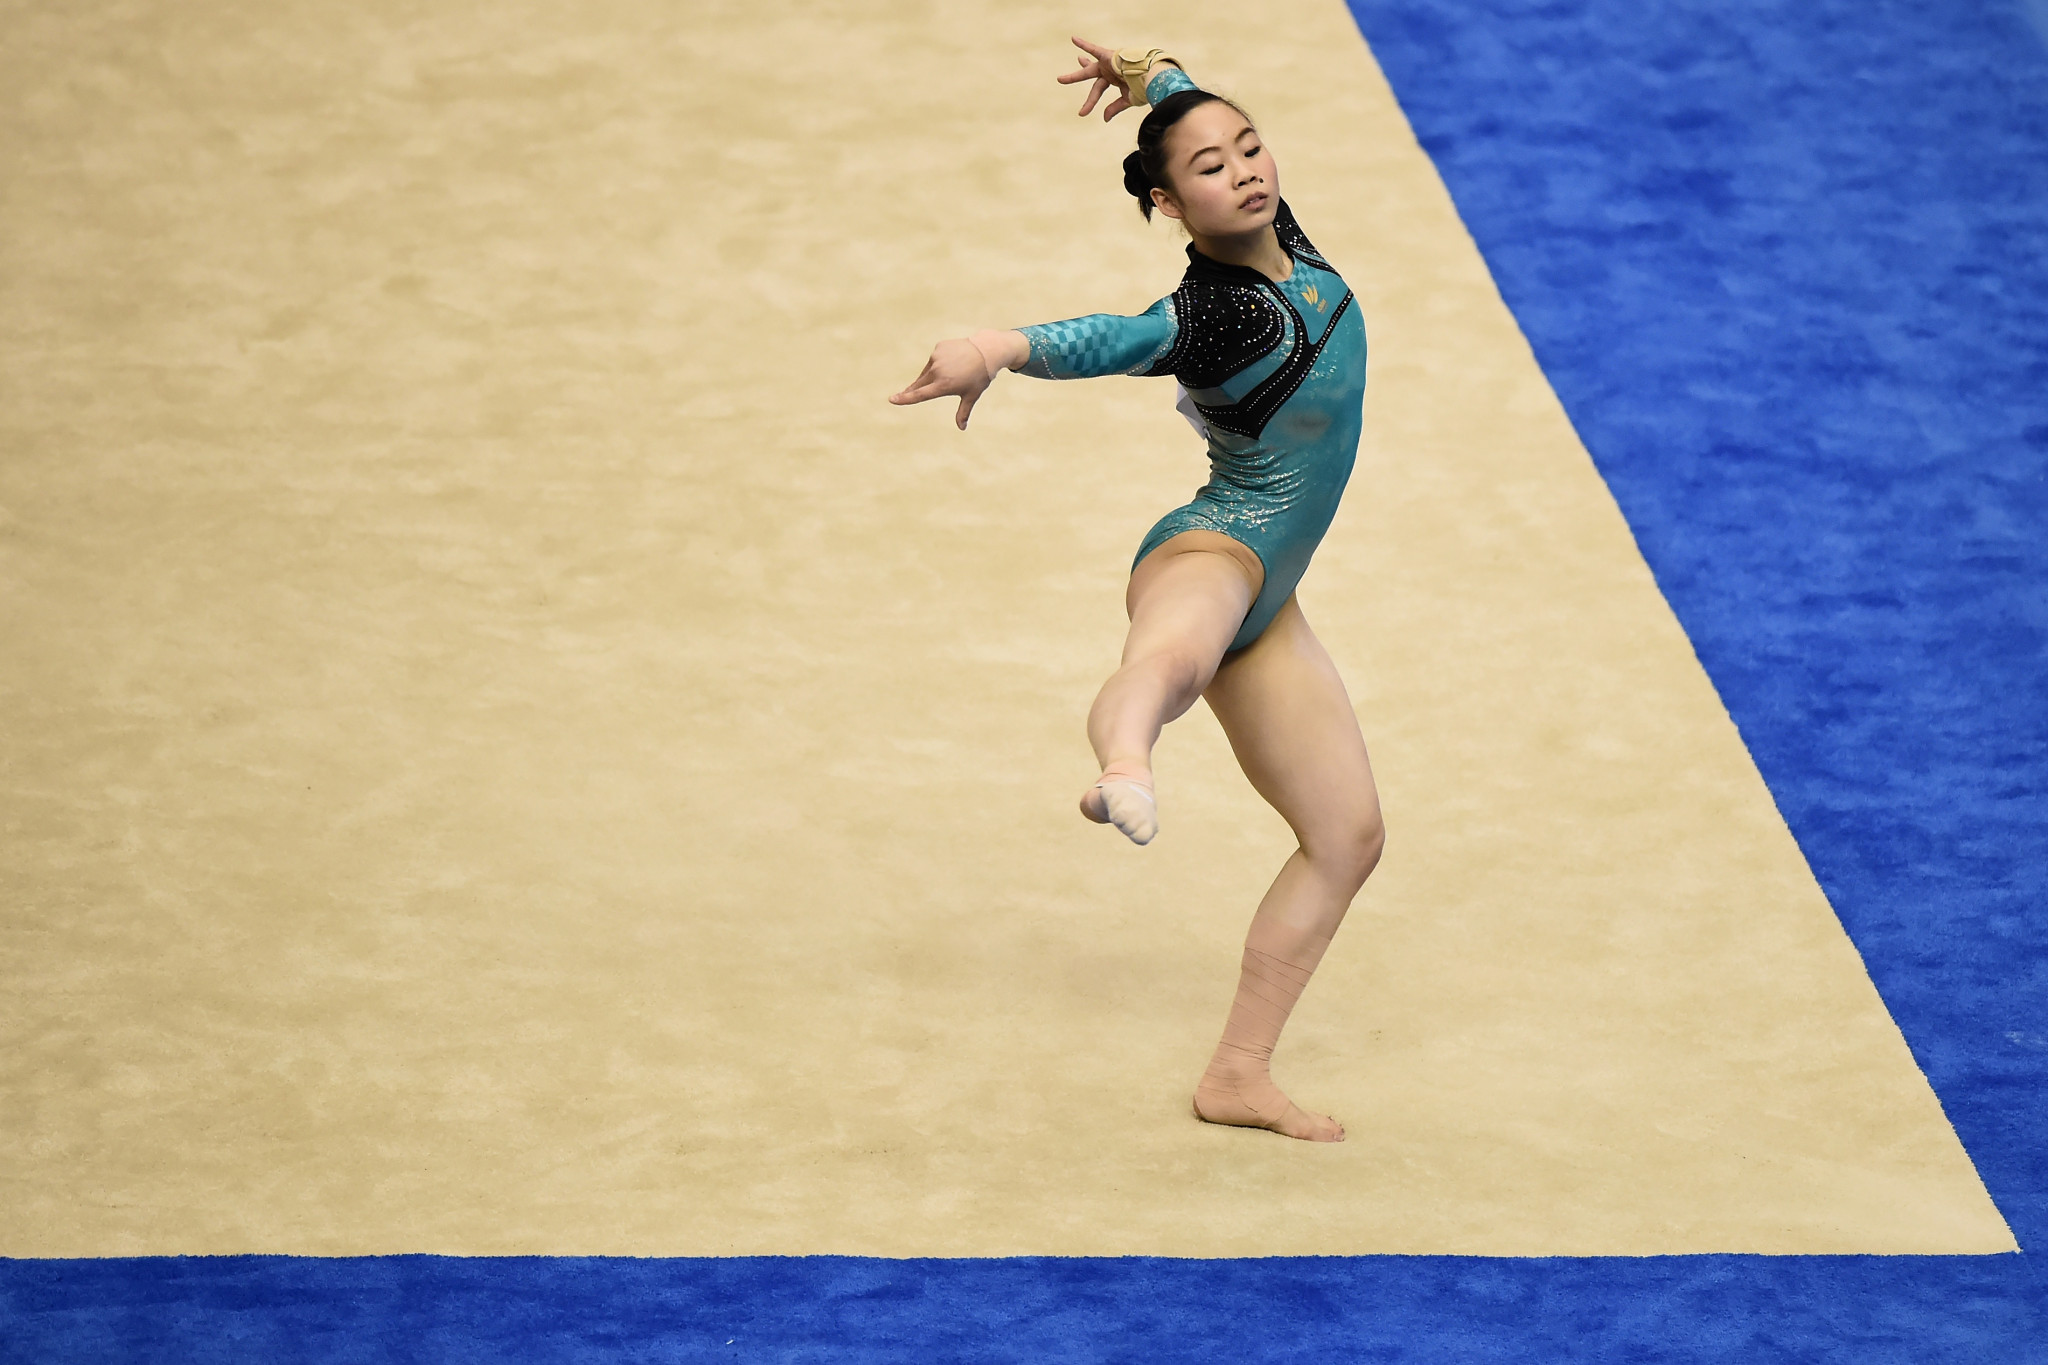 The Japanese gymnast competed at the 2016 Rio Olympics but may not attend the gymnastics World Championships in Doha without her coach ©Getty Images